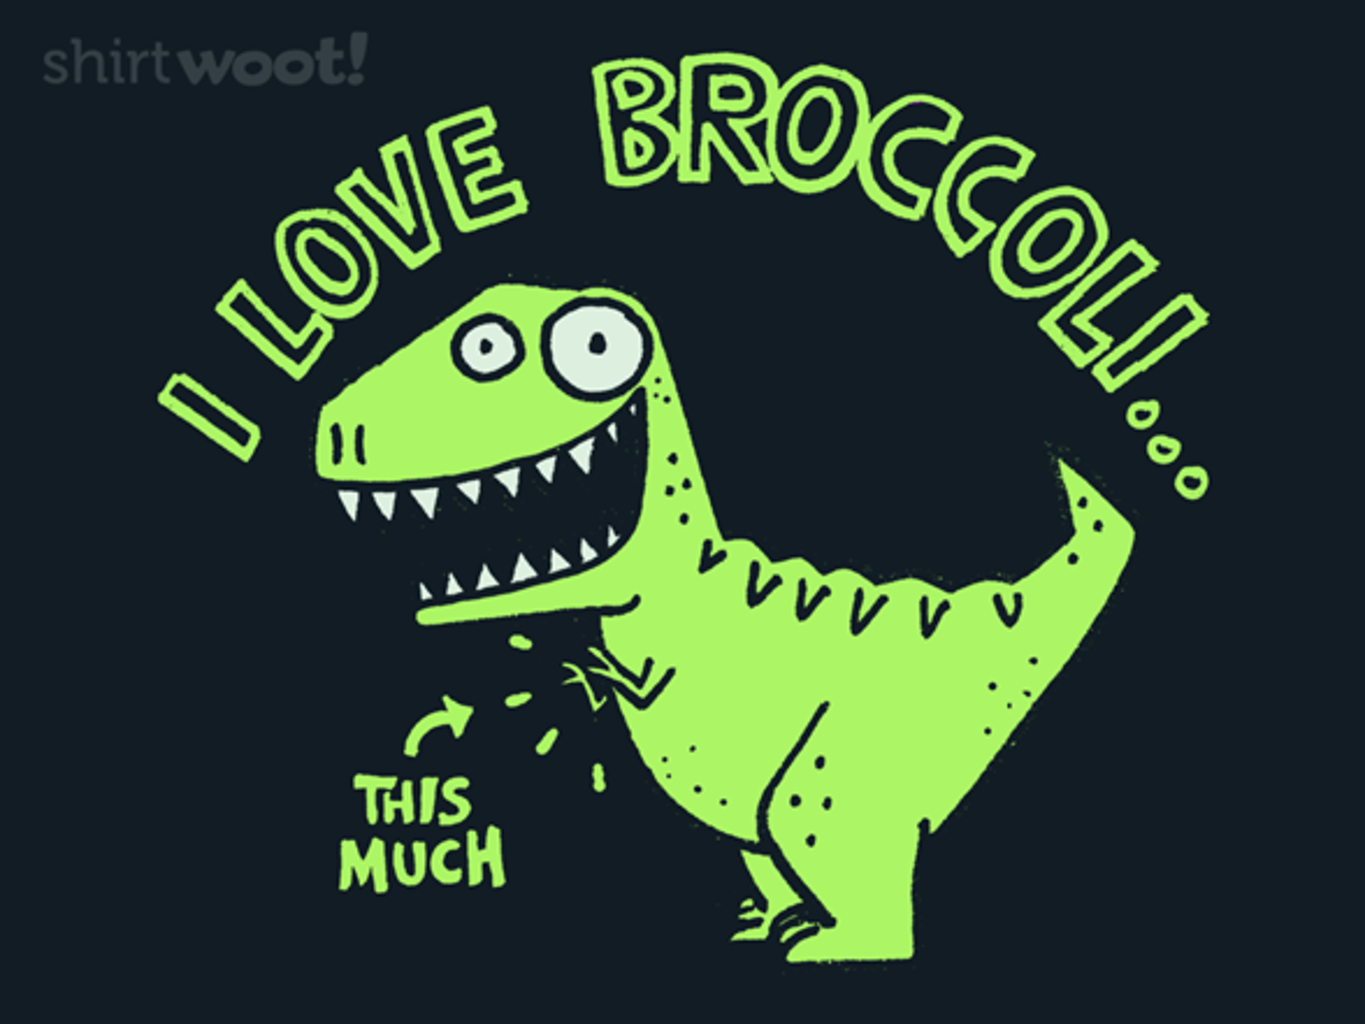 Woot!: I Love Broccoli...This Much - $15.00 + Free shipping